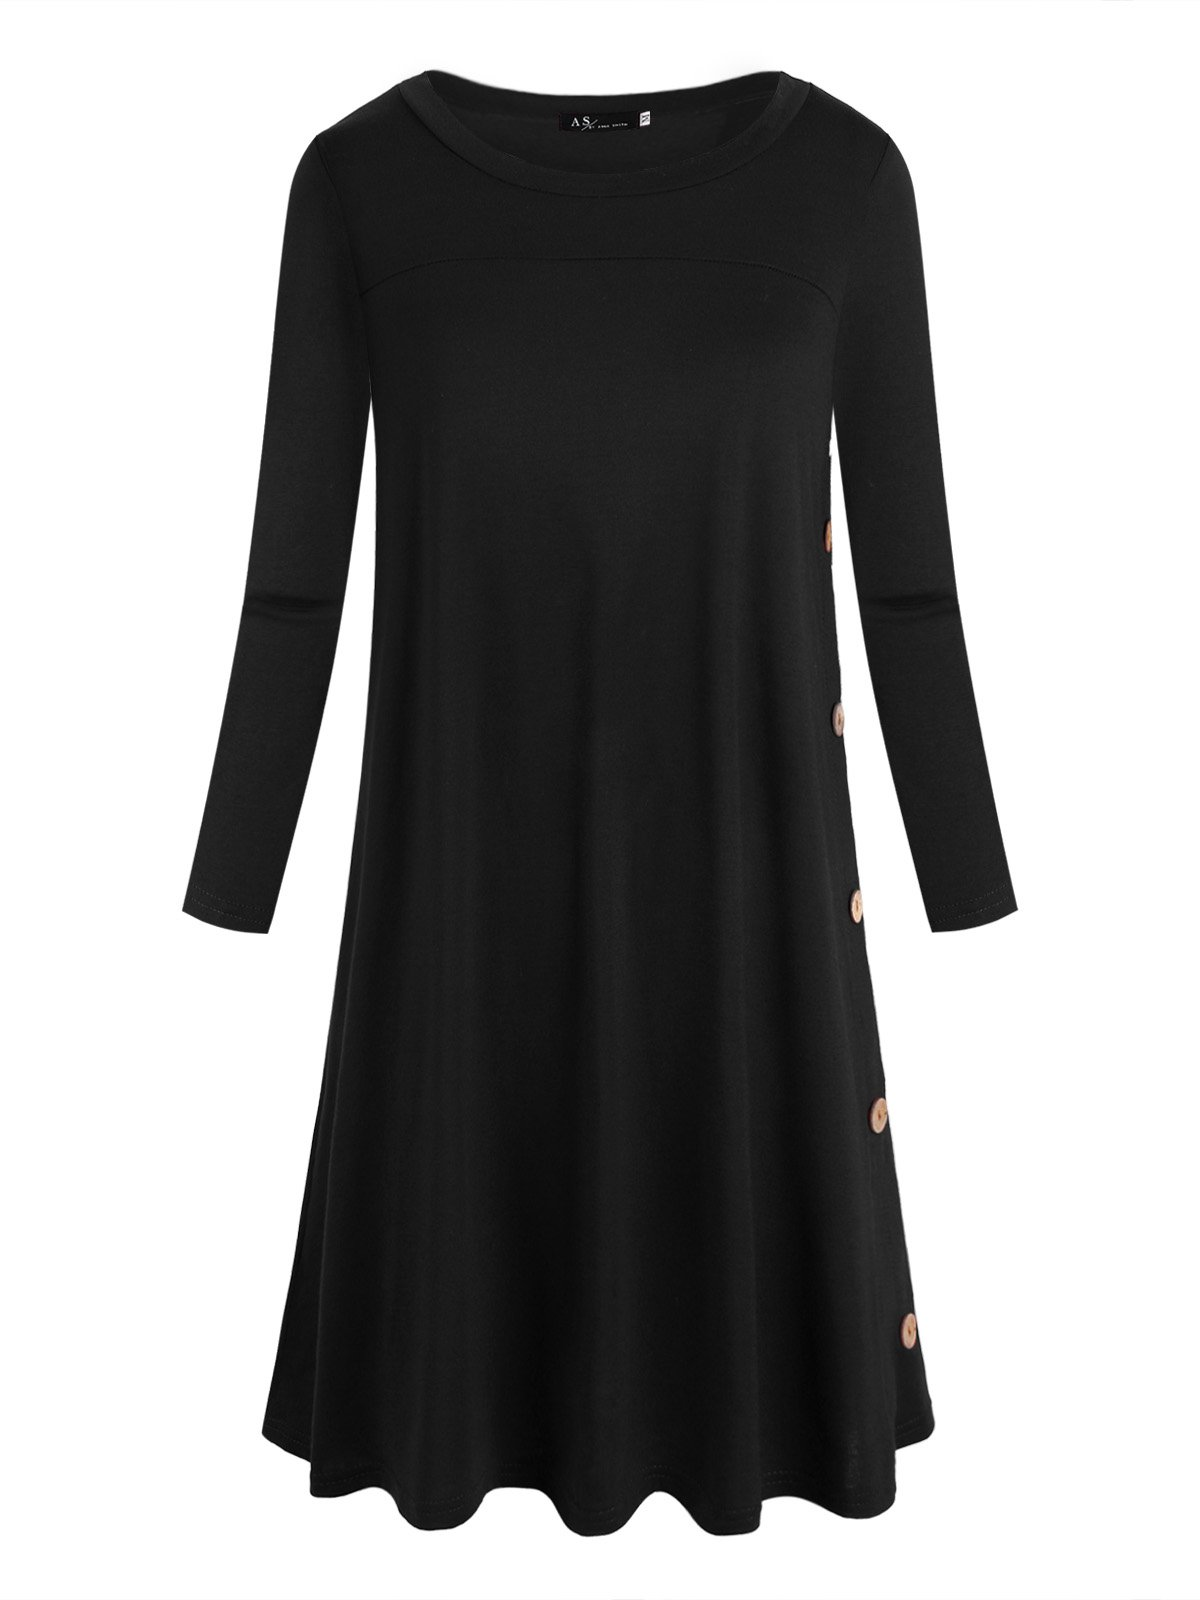 Anna Smith 3 4 Sleeve Tunic, Ladies Fashion Design Fine Knitted Round Neck T Shirt Dress Women Plain Color Flare Hem Going Out Relaxed Oversized Tops Loose Pullover Black XXL